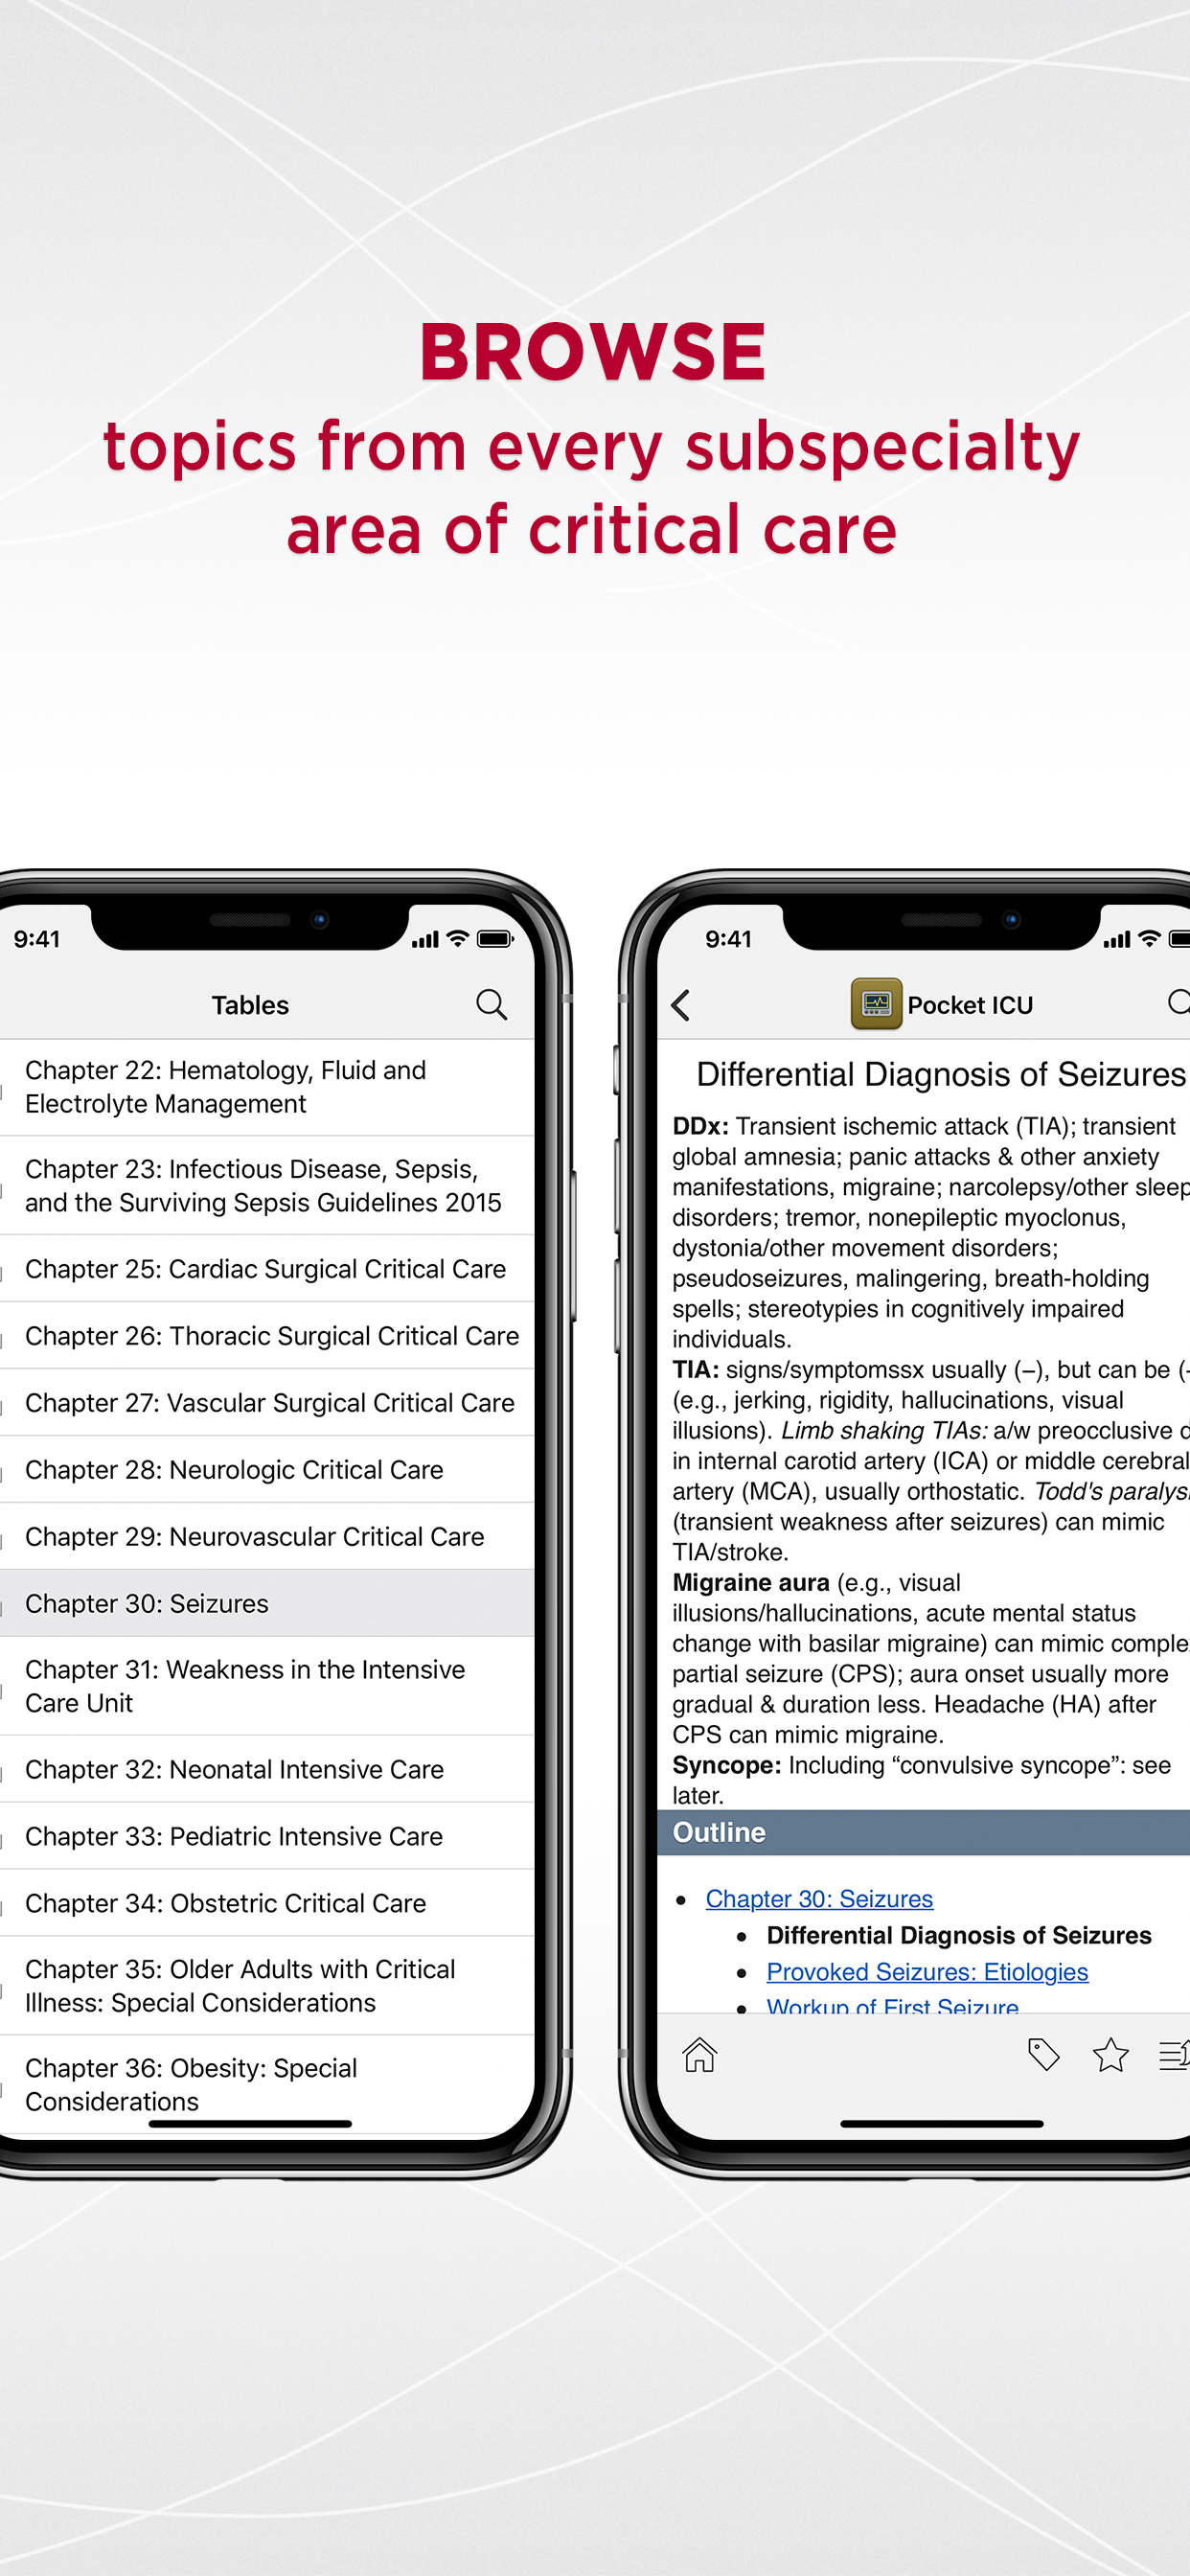 Unbound Medicine | Pocket ICU App for iPad, iPhone, iPod touch